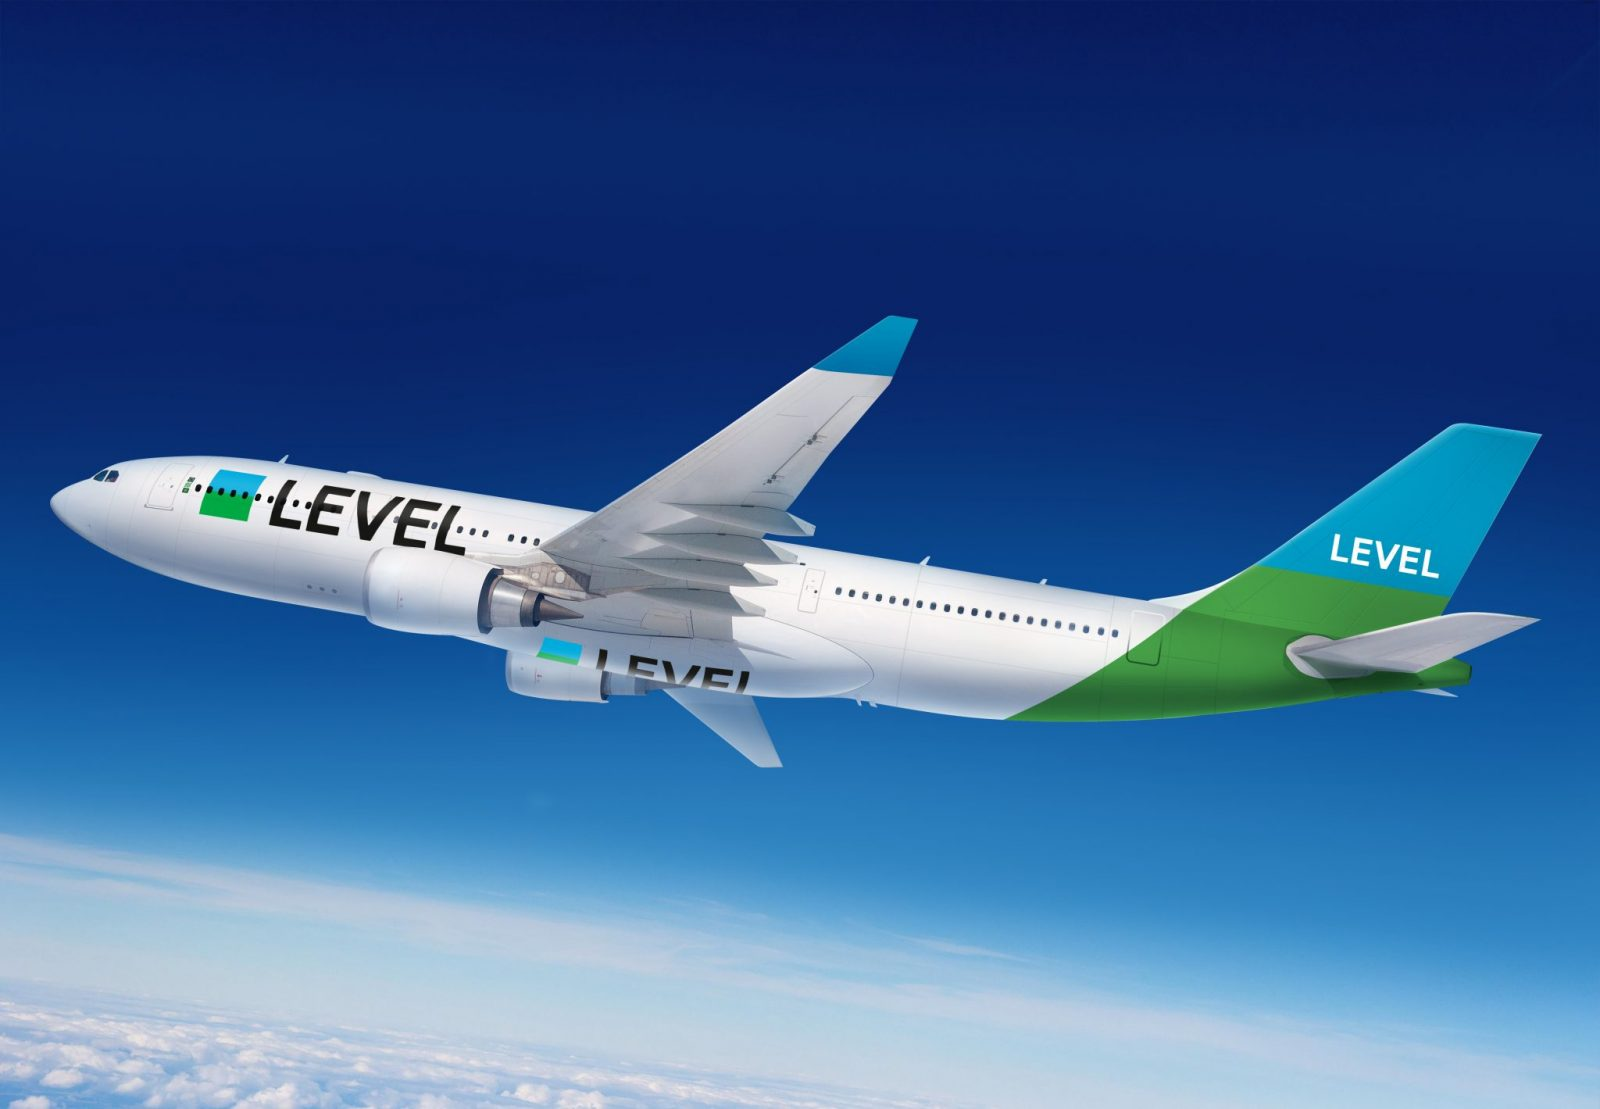 Is New Low-Cost Airline 'Level' a Cynical Ploy by IAG? - International Airlines Group, owner of British Airways Aer Lingus, launches a new low-cost long-haul airline called Level. Will fly from Barcelona and be operated by Iberia